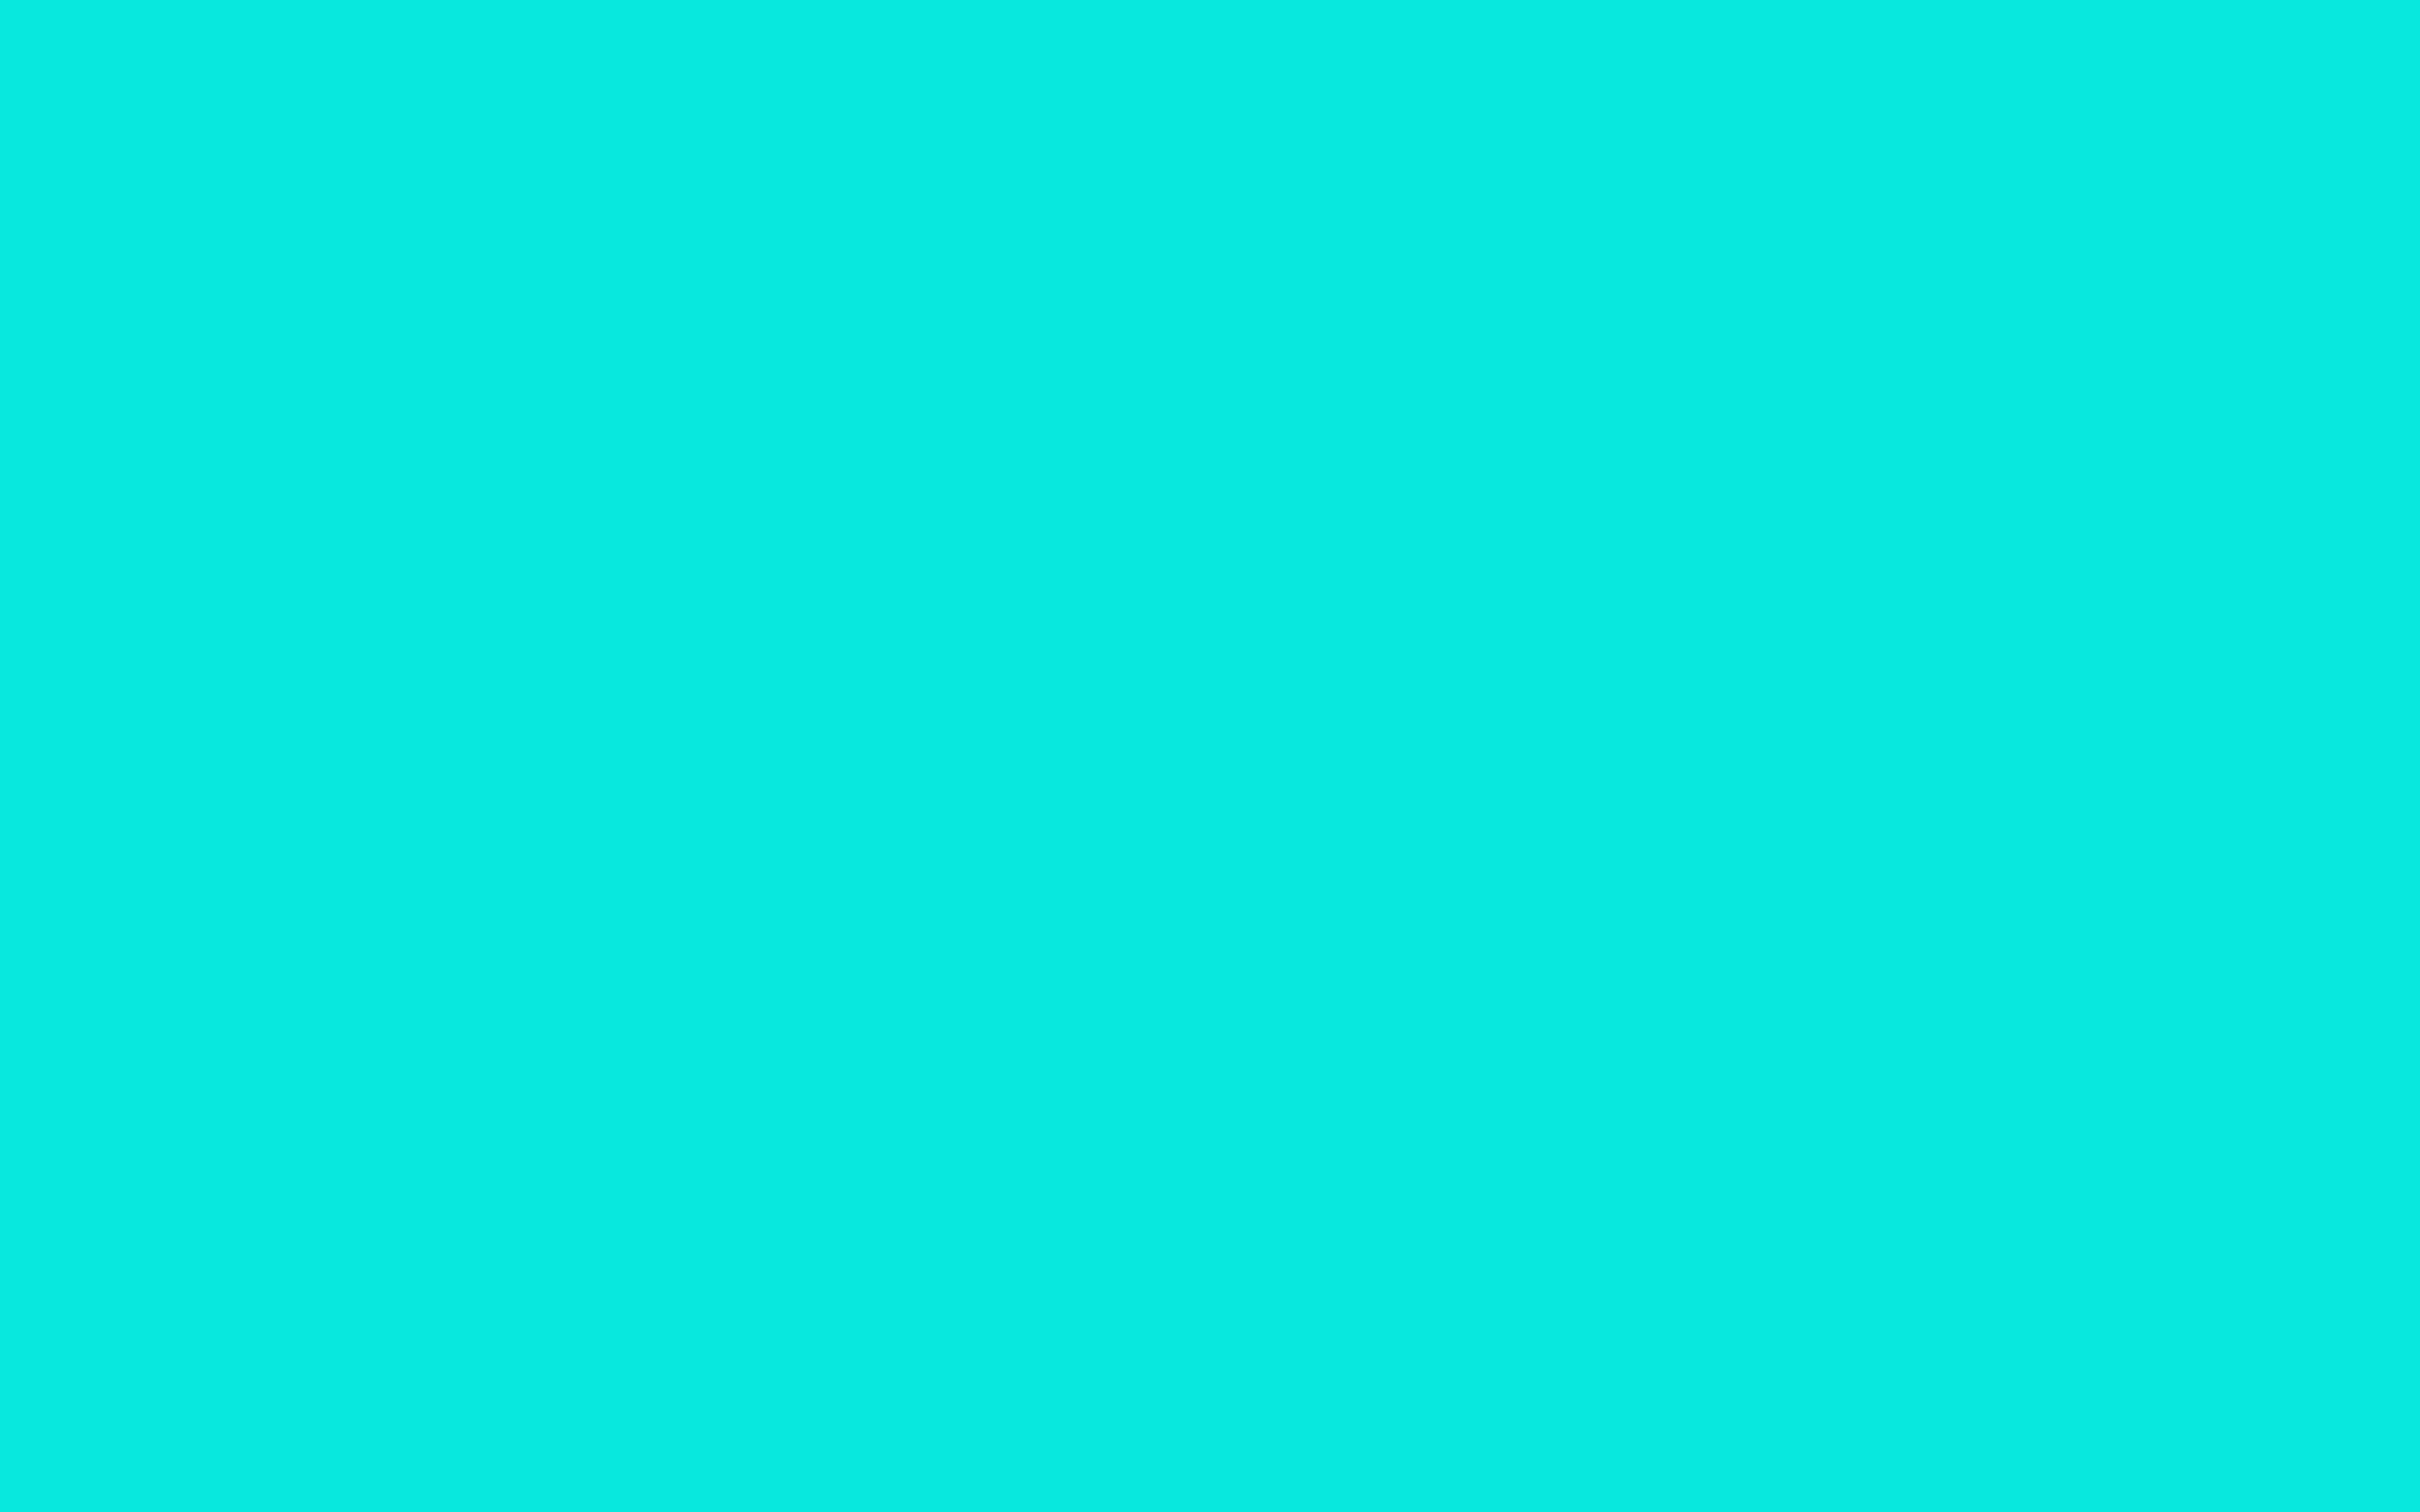 2560x1600 Bright Turquoise Solid Color Background